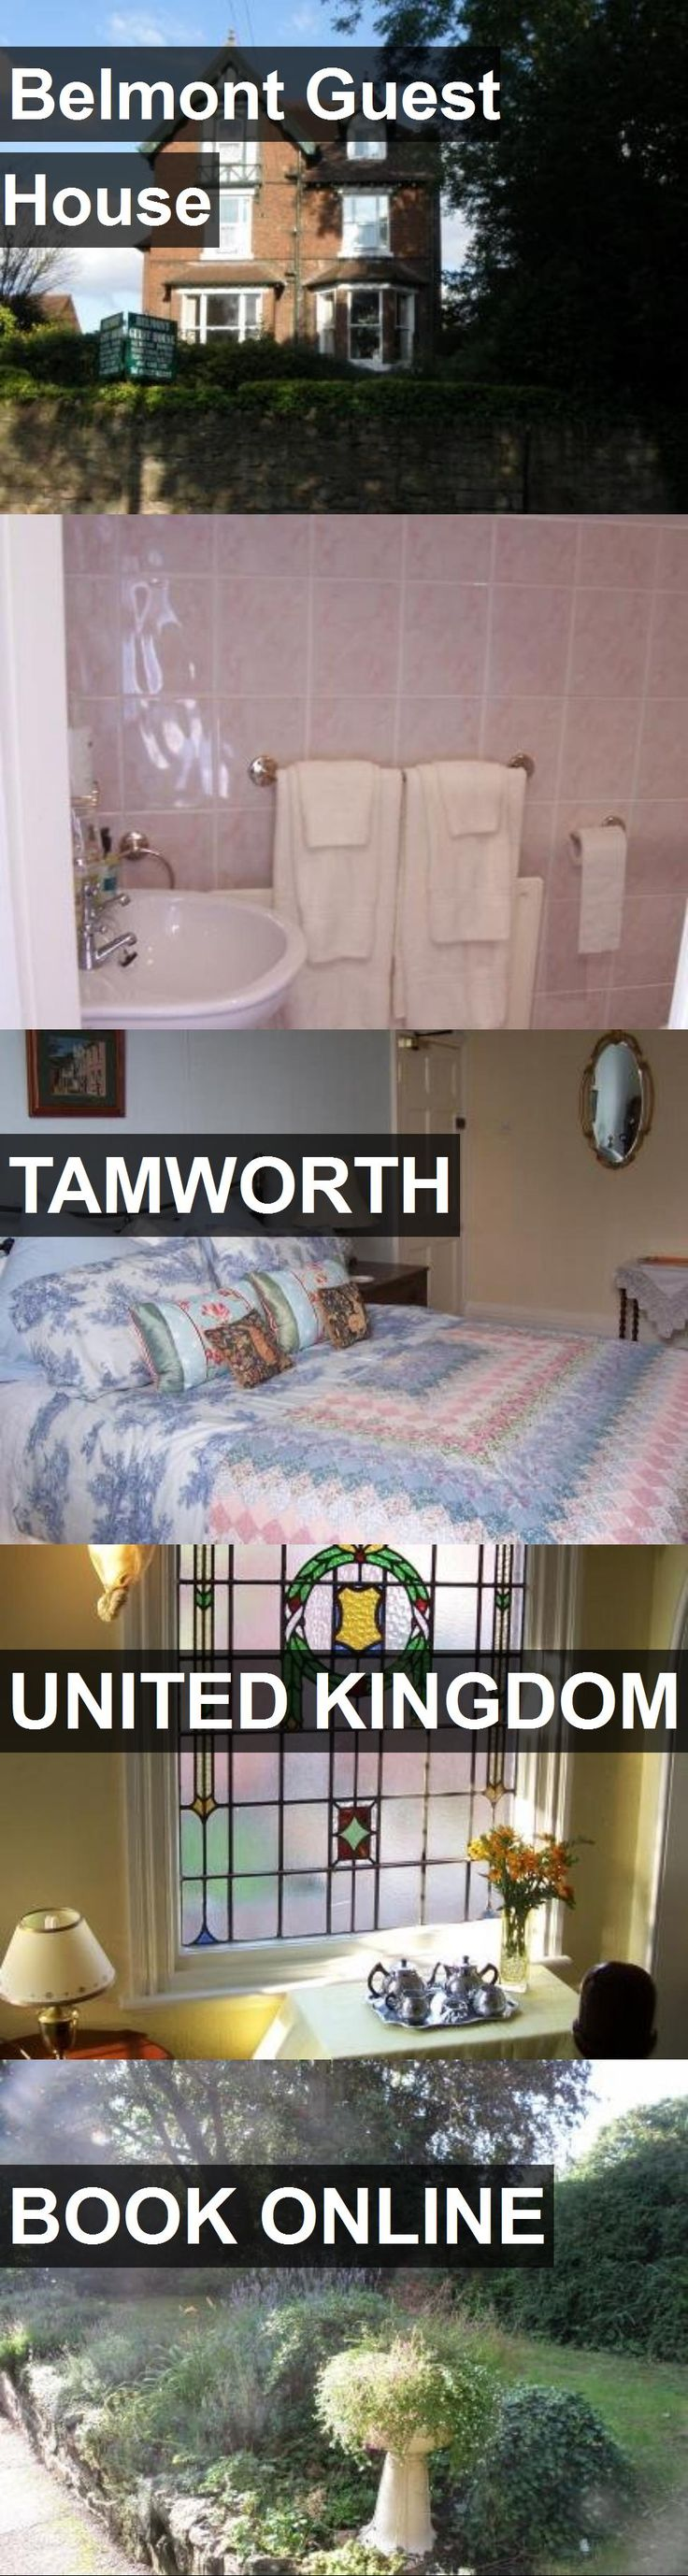 Hotel Belmont Guest House in Tamworth, United Kingdom. For more information, photos, reviews and best prices please follow the link. #UnitedKingdom #Tamworth #BelmontGuestHouse #hotel #travel #vacation